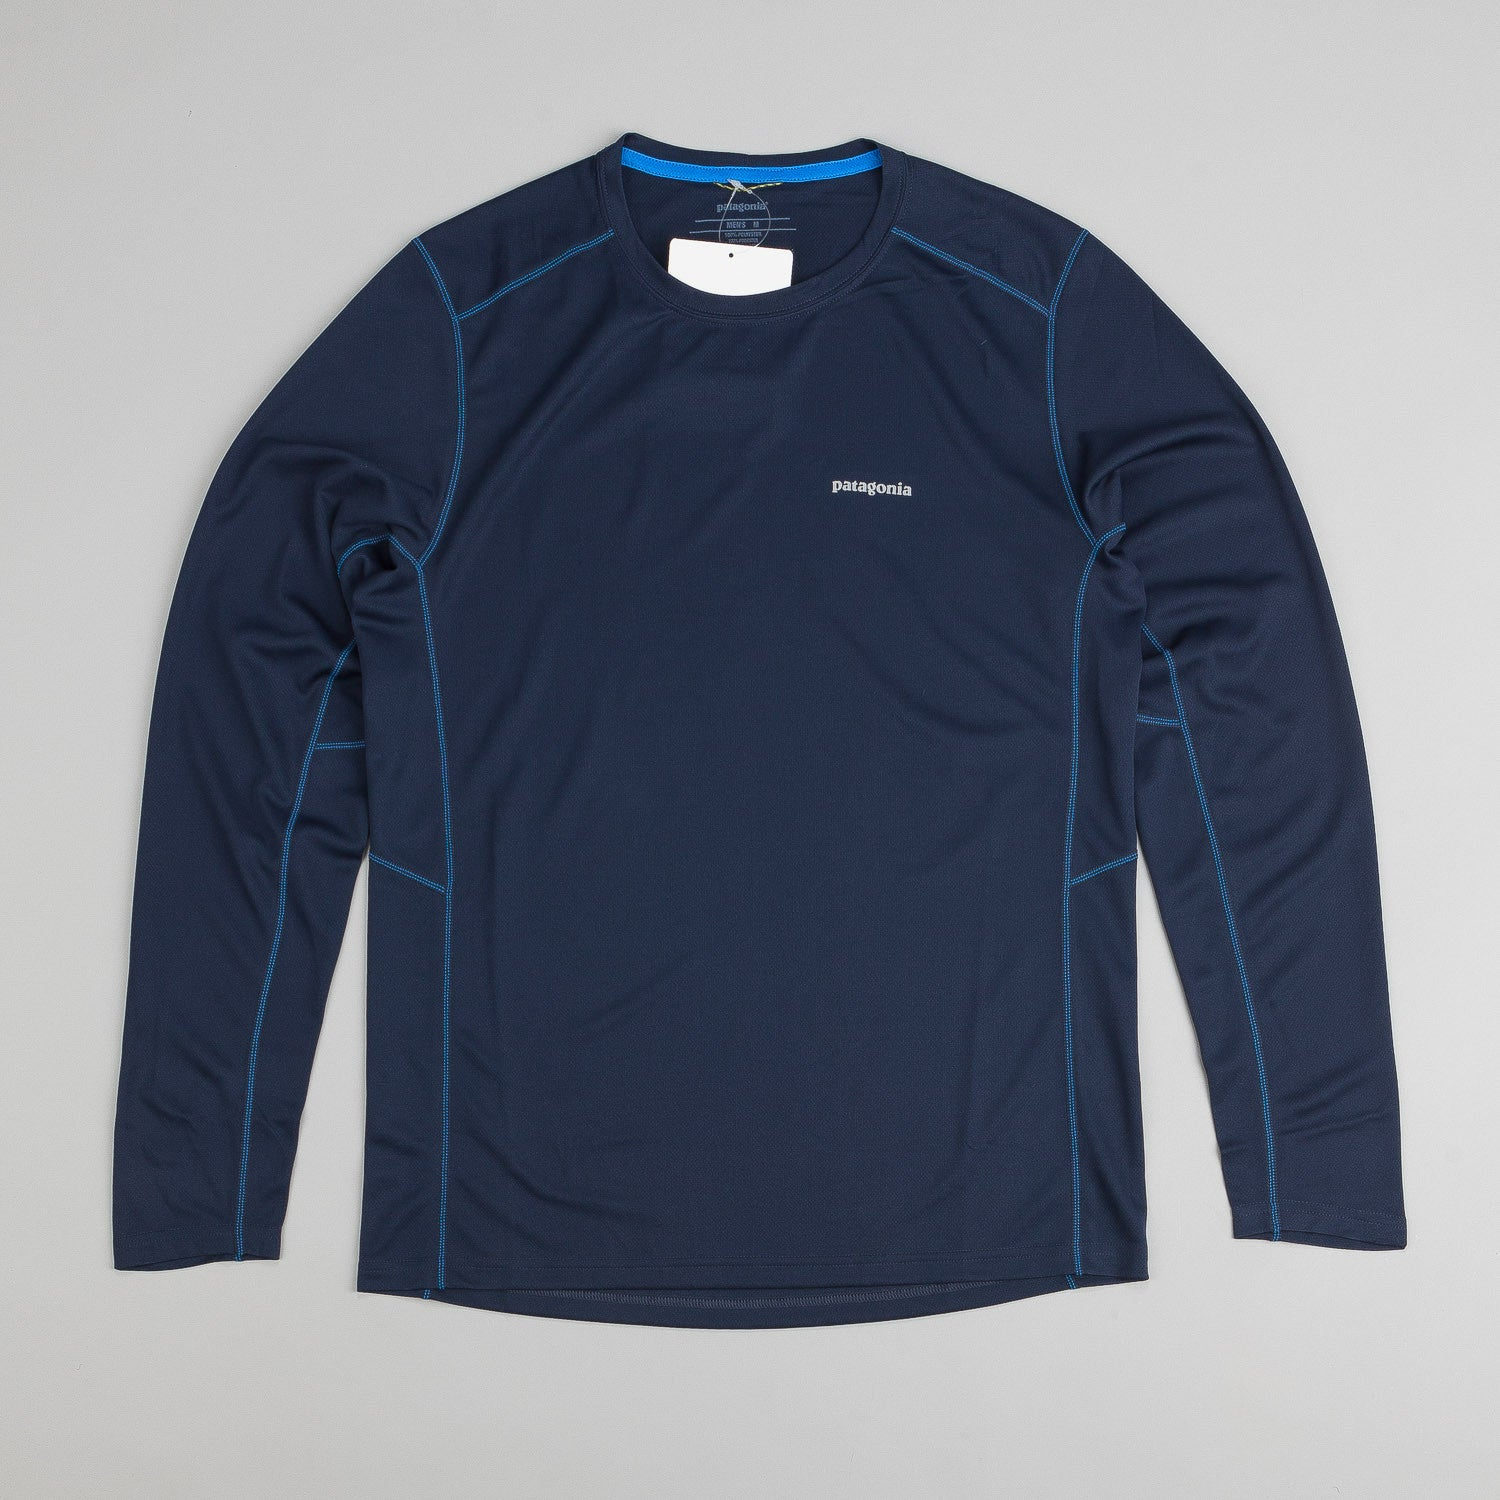 Patagonia Fore Runner L/S T-Shirt - Navy Blue